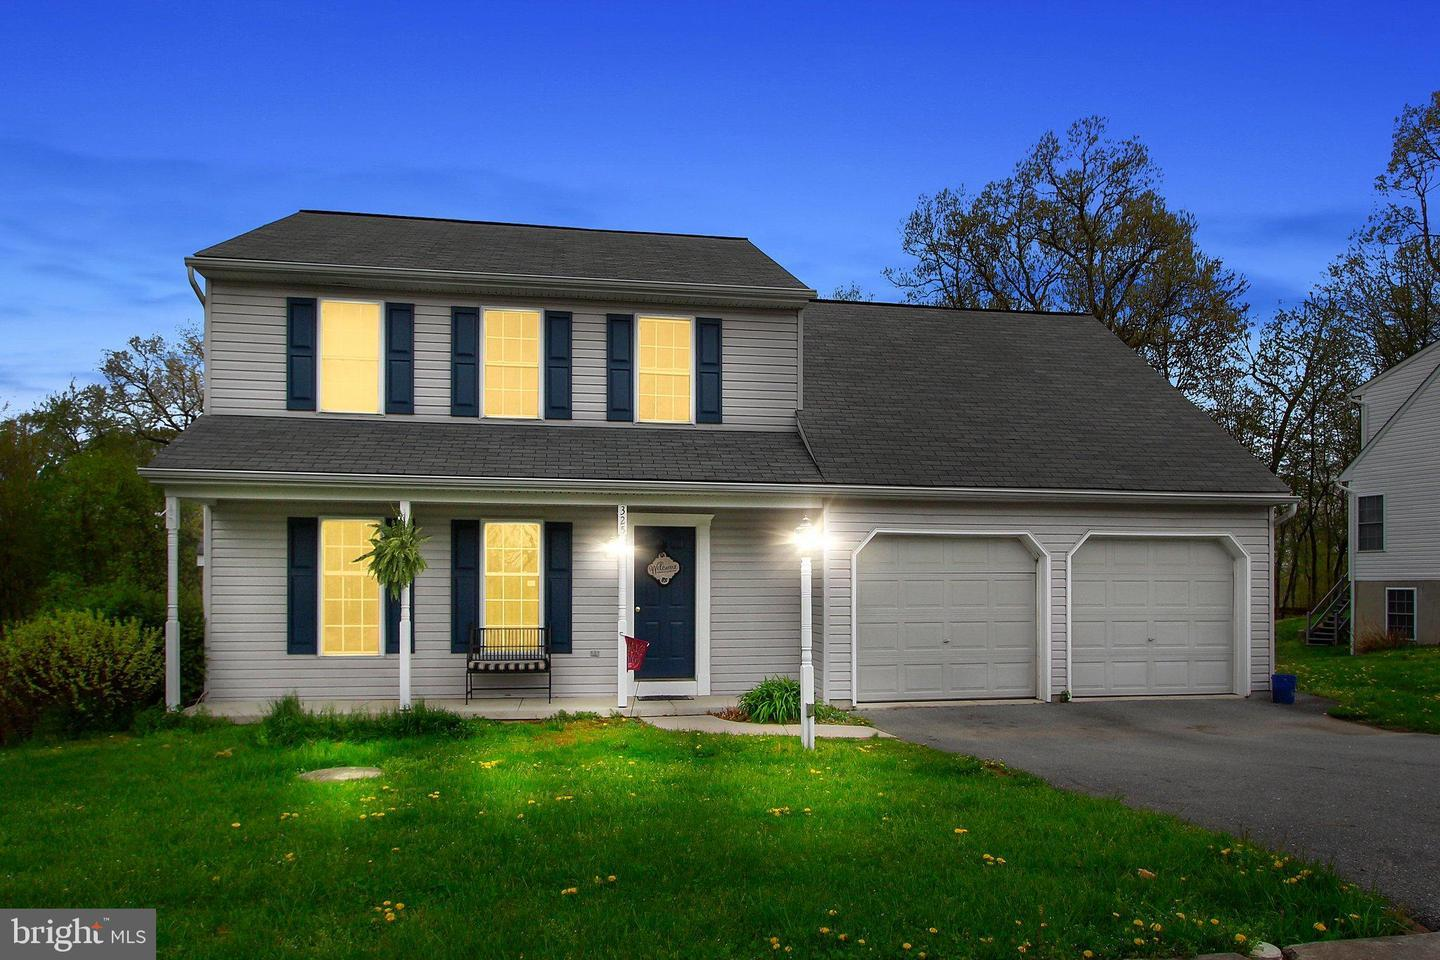 Local Real Estate Homes For Sale Wrightsville Pa Coldwell Banker